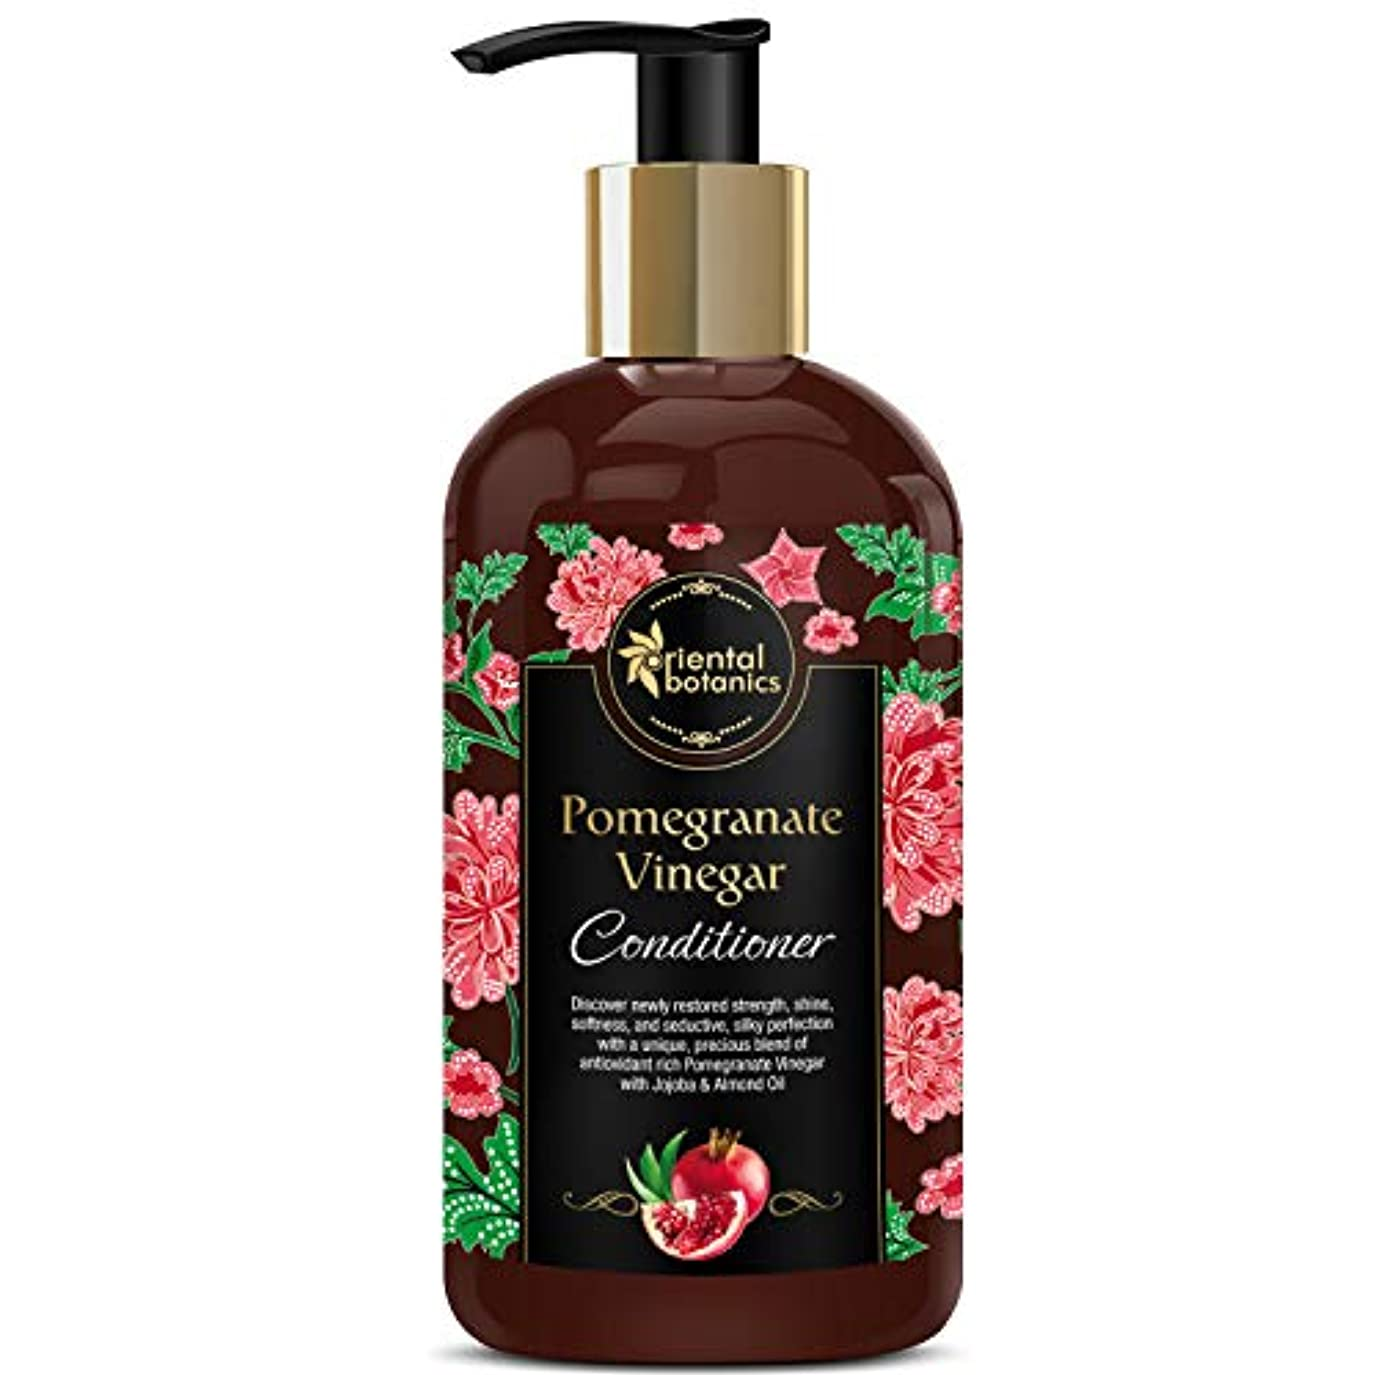 より良い船酔い資本主義Oriental Botanics Pomegranate Vinegar Conditioner - For Healthy, Strong Hair with Antioxidant Boost & Golden Jojoba...